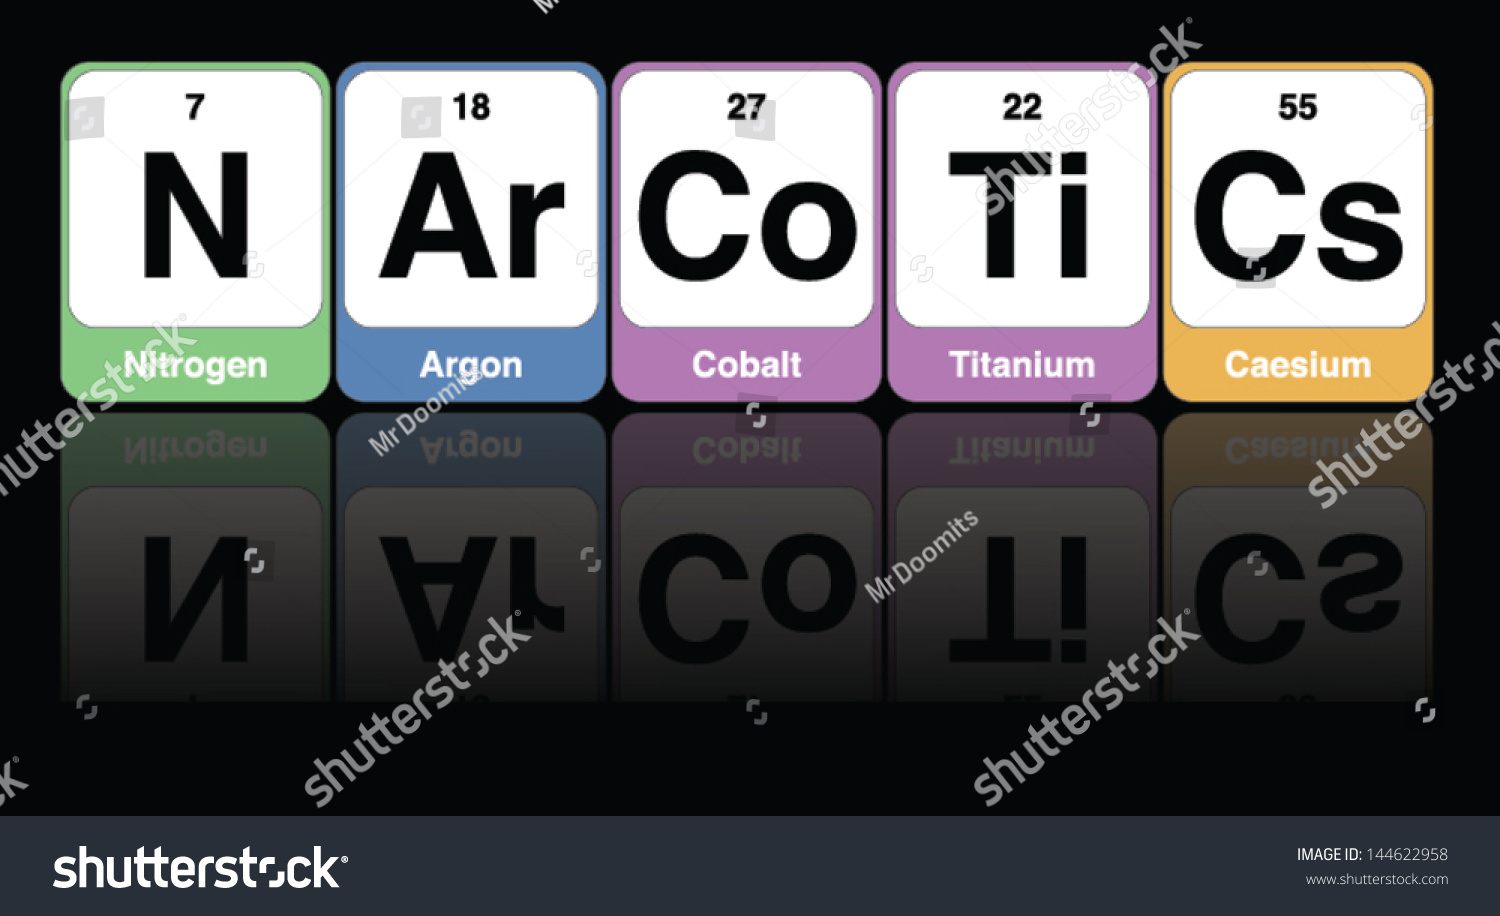 Words using periodic table symbols images periodic table images write words with periodic table images periodic table images words from periodic table symbols image collections gamestrikefo Choice Image